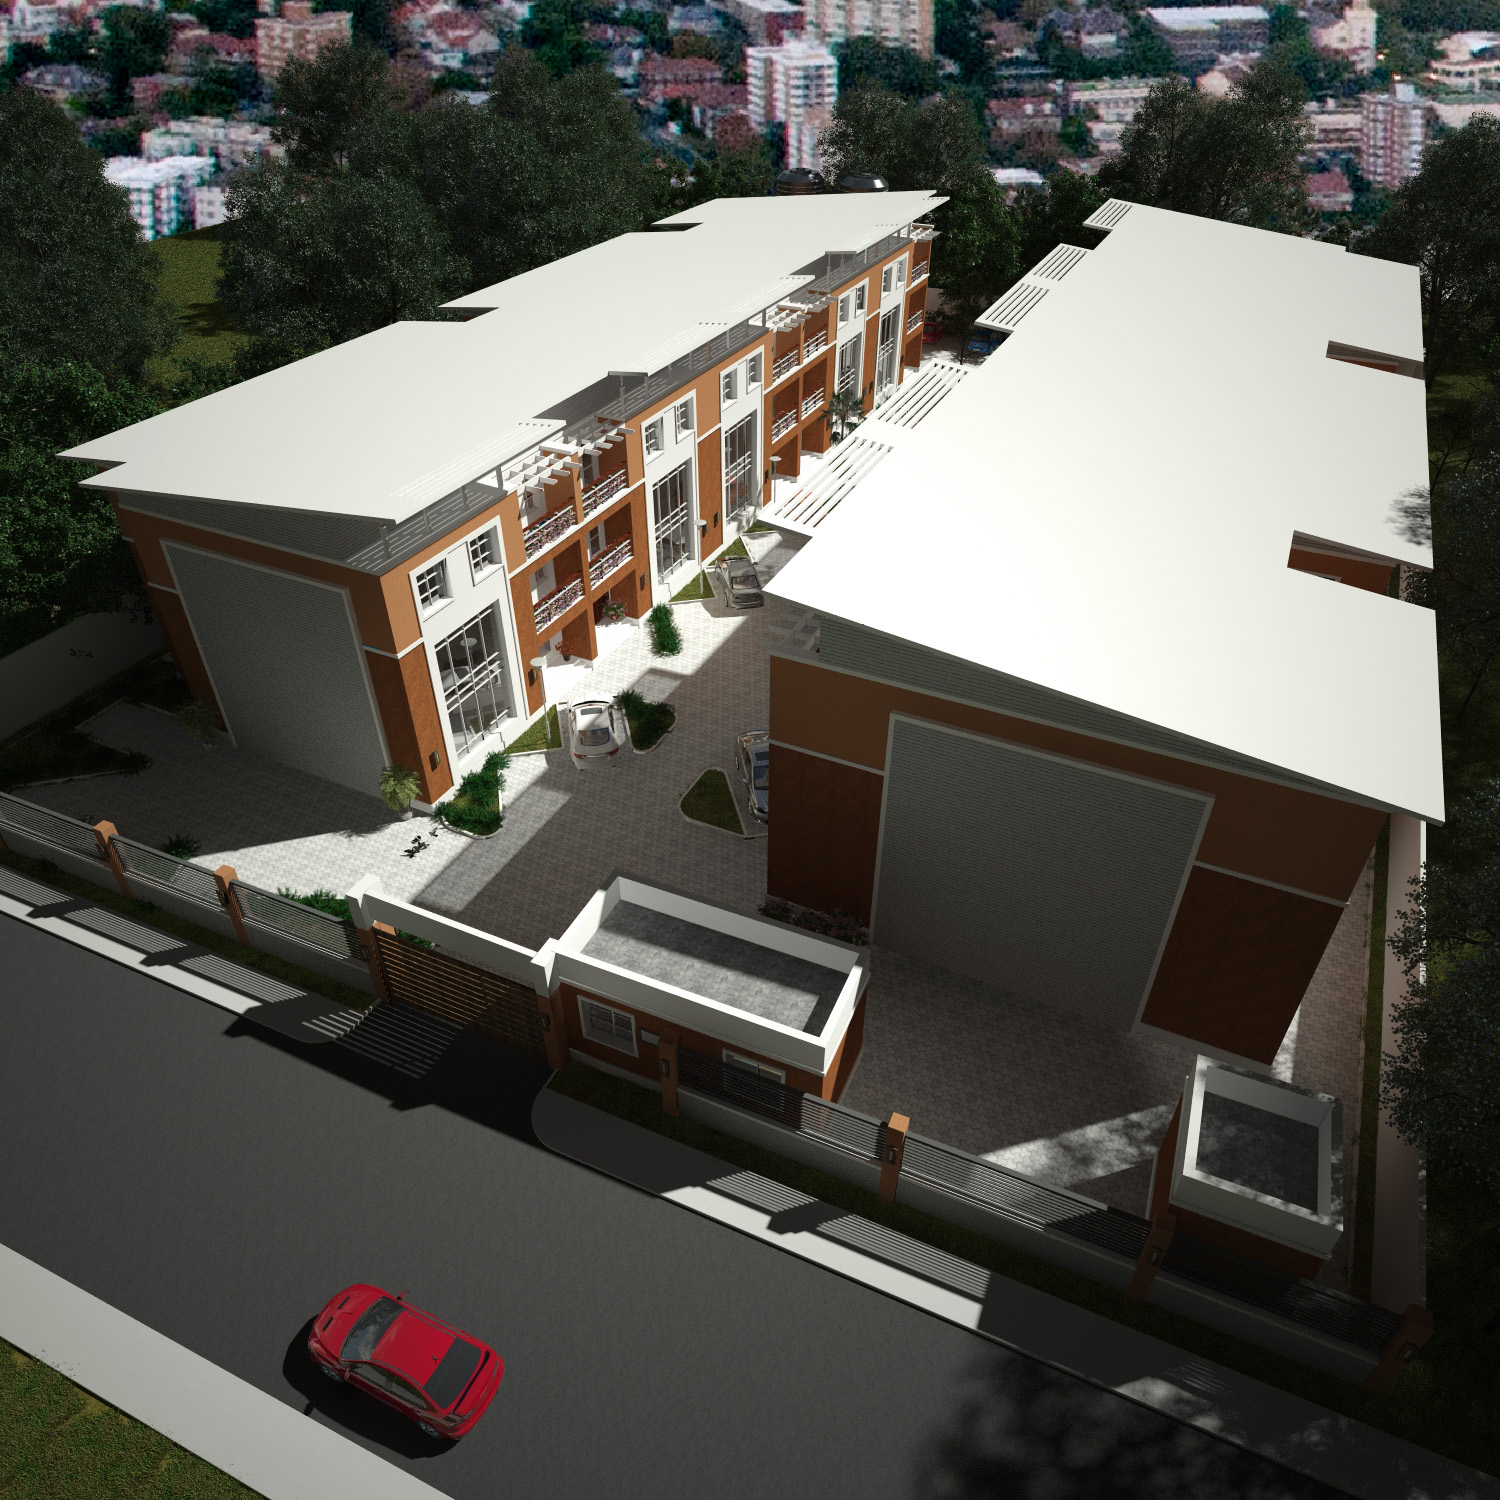 DANTATA TOWN DEVELOPERS LIMITED.